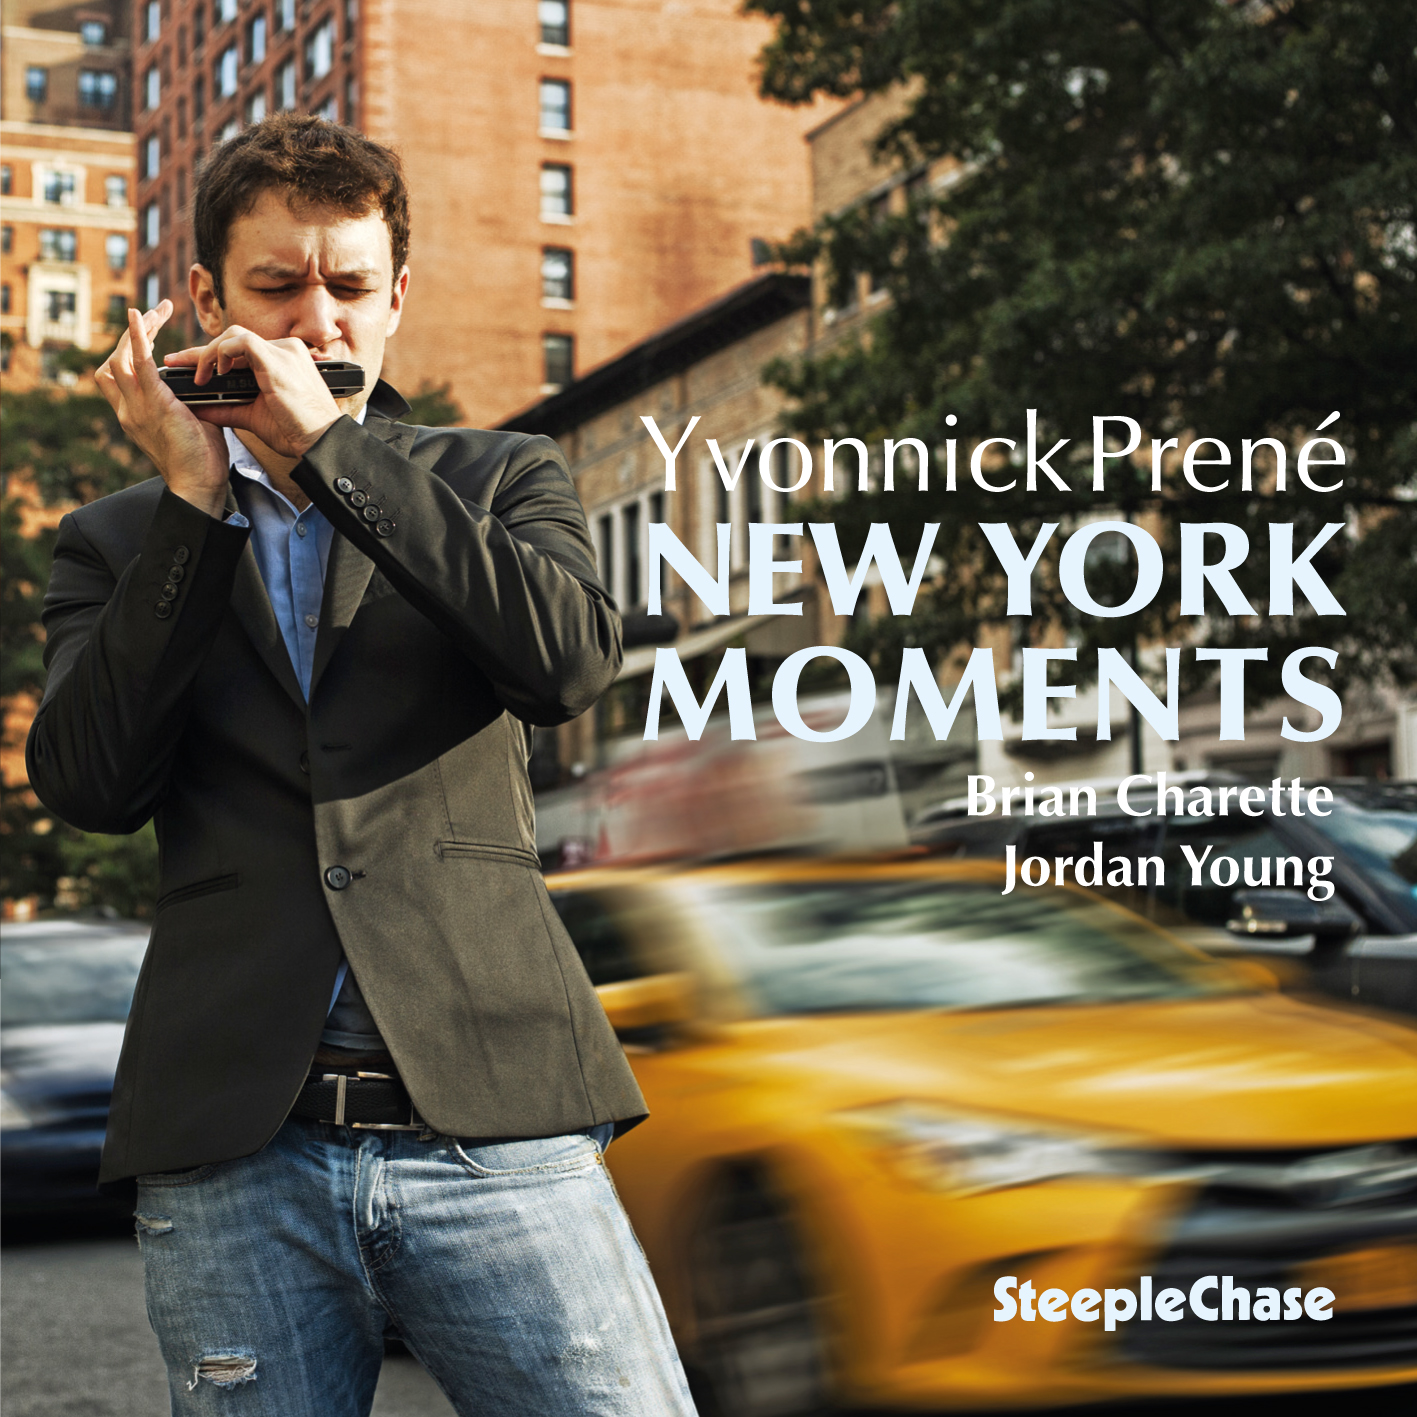 REVIEW: Yvonnick Prene Reviewed in Musical Memoirs